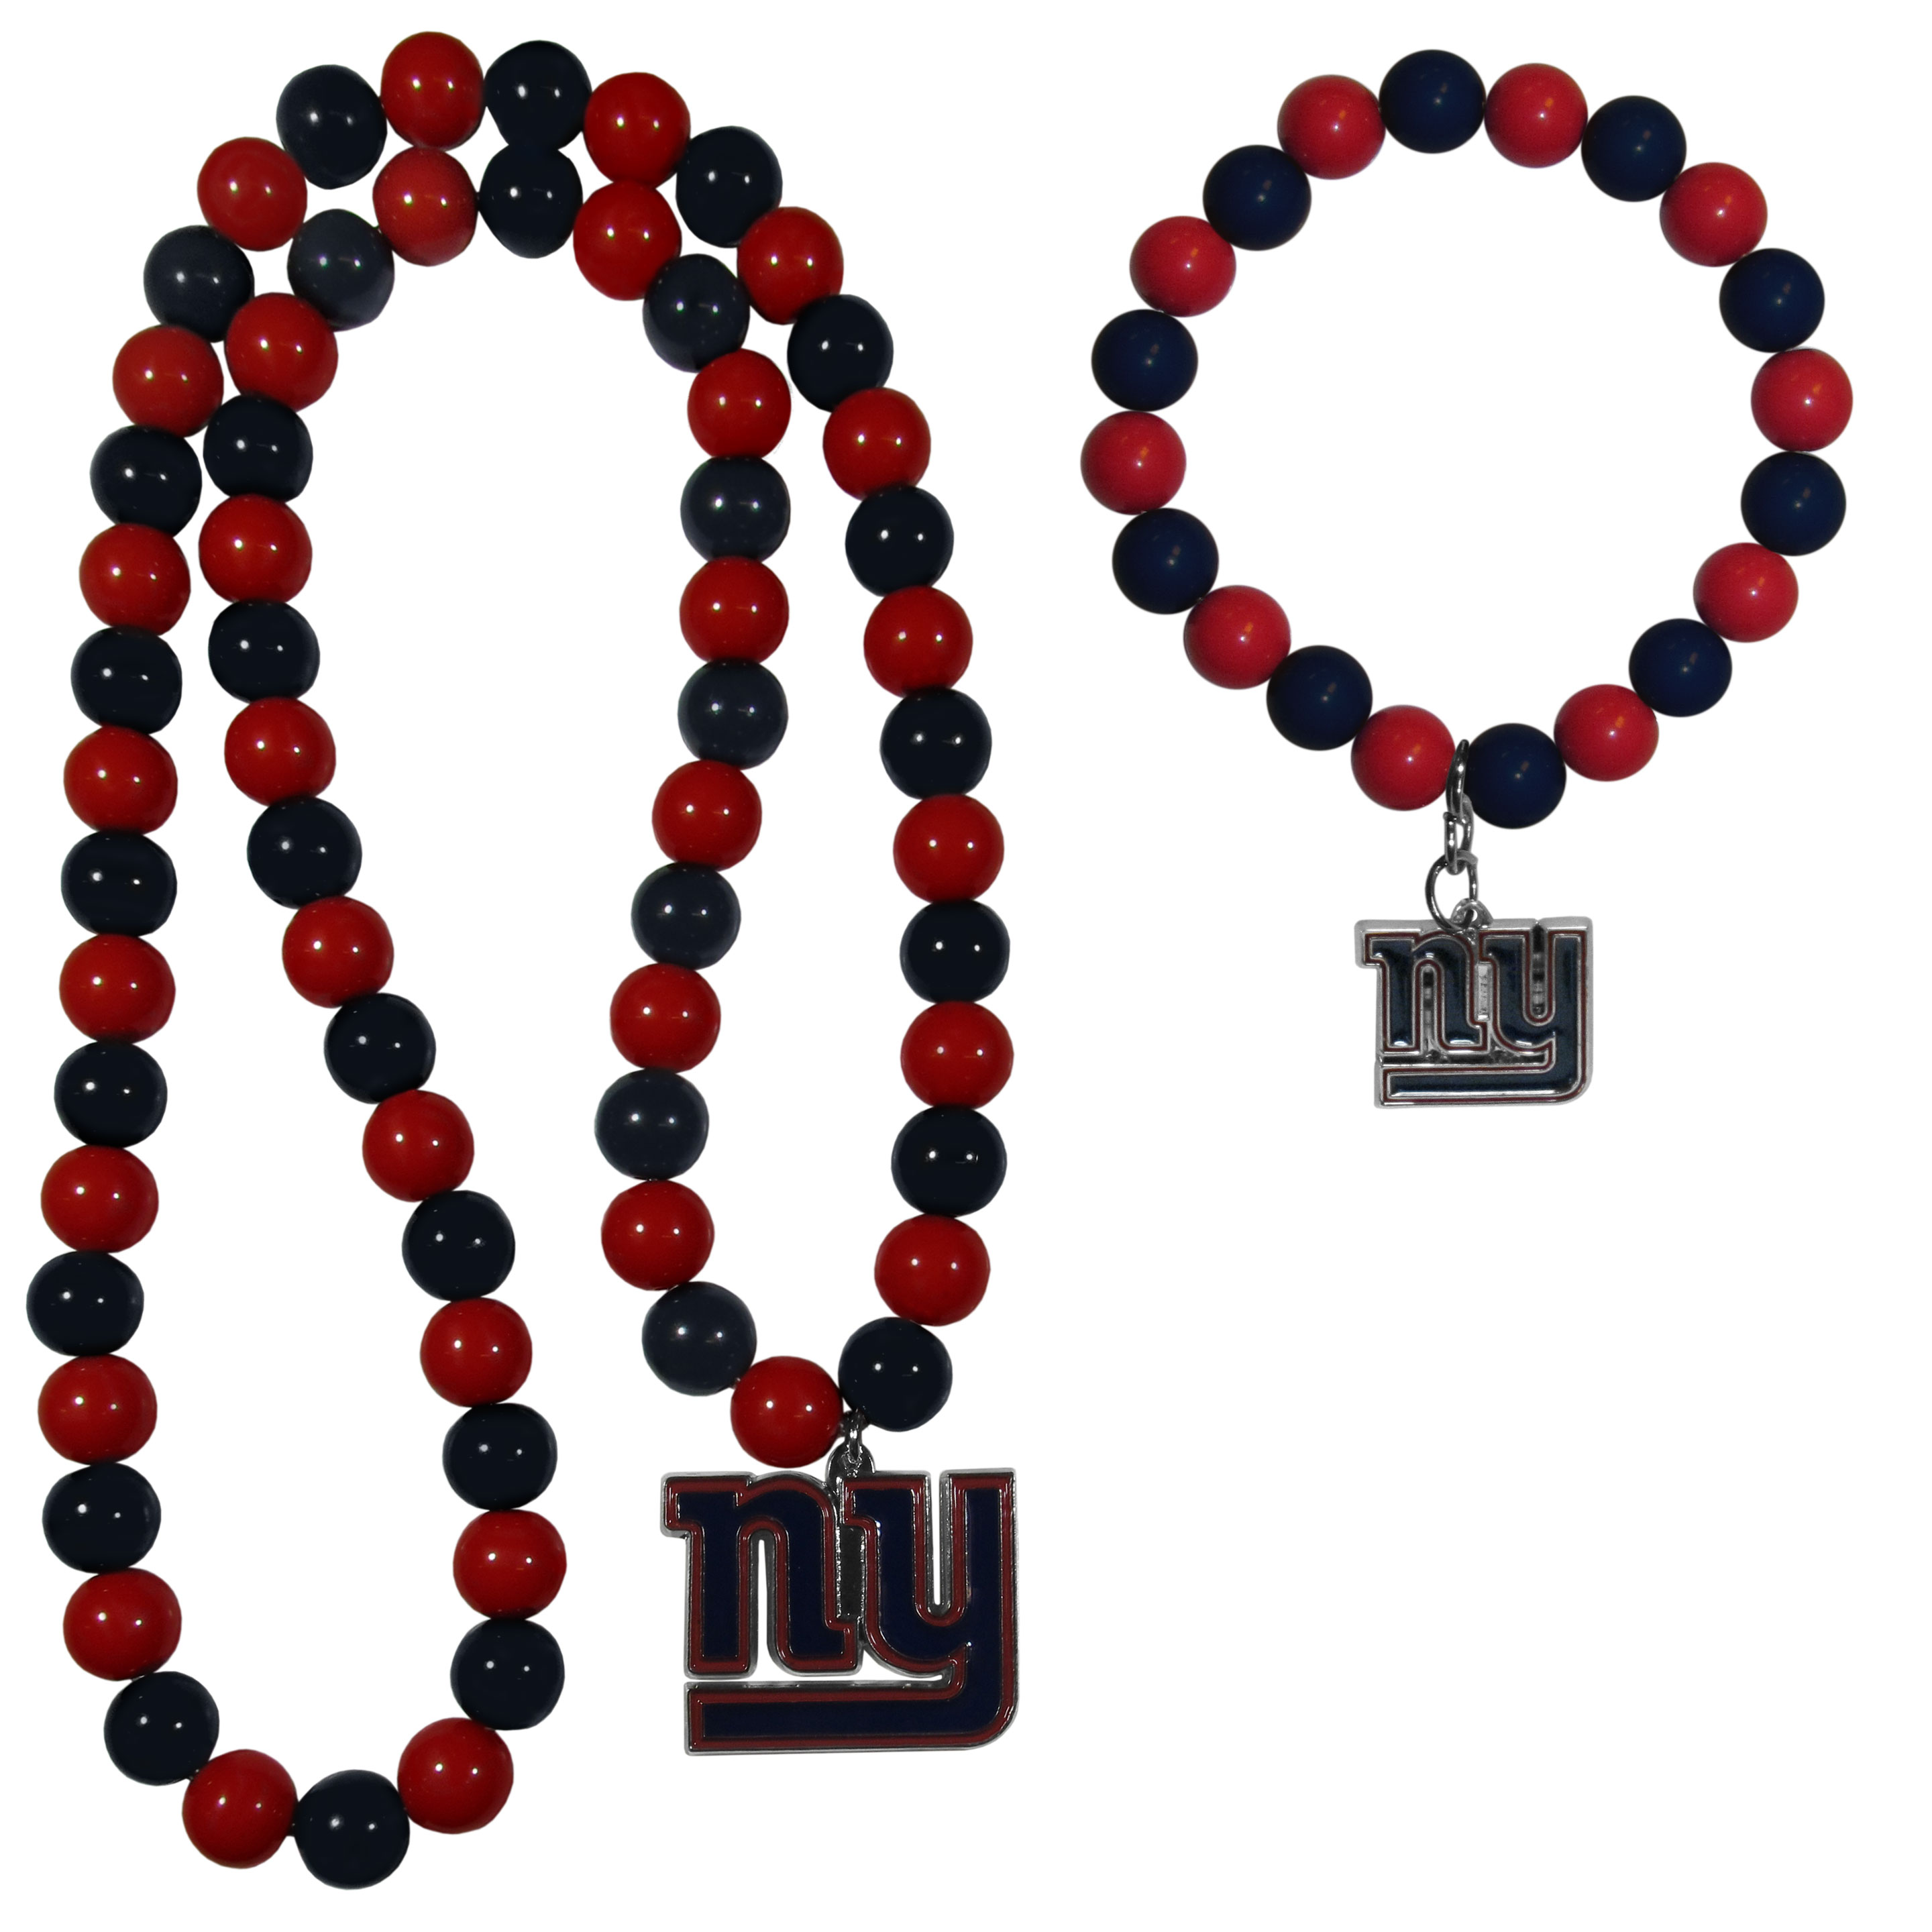 New York Giants Fan Bead Necklace and Bracelet Set - These fun and colorful New York Giants fan bead jewelry pieces are an eyecatching way to show off your team spirit. The striking necklace is a 24 inch string of alternating team colored beads with a large team pendant. The mathcing bracelet has alternating team colored beads on a stretch cord and features a matching team charm.